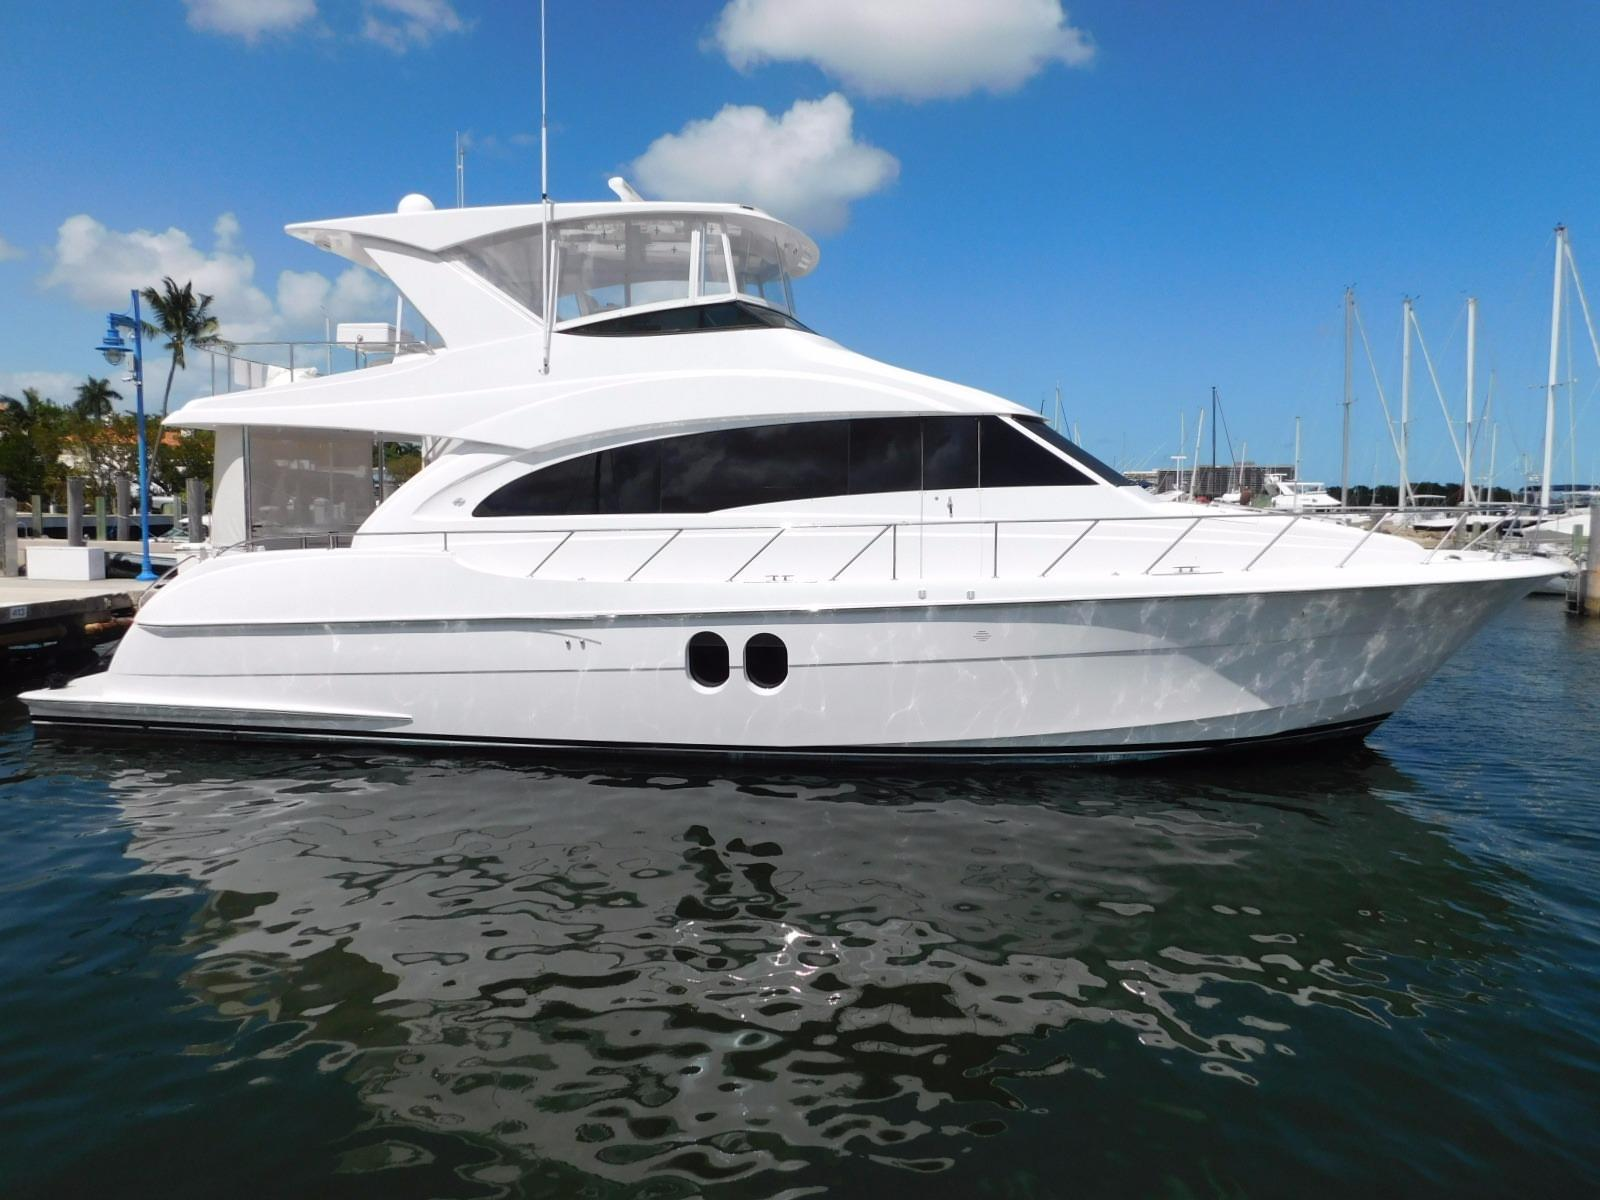 Used hatteras yachts for sale from 50 to 60 feet for 50 ft motor yachts for sale